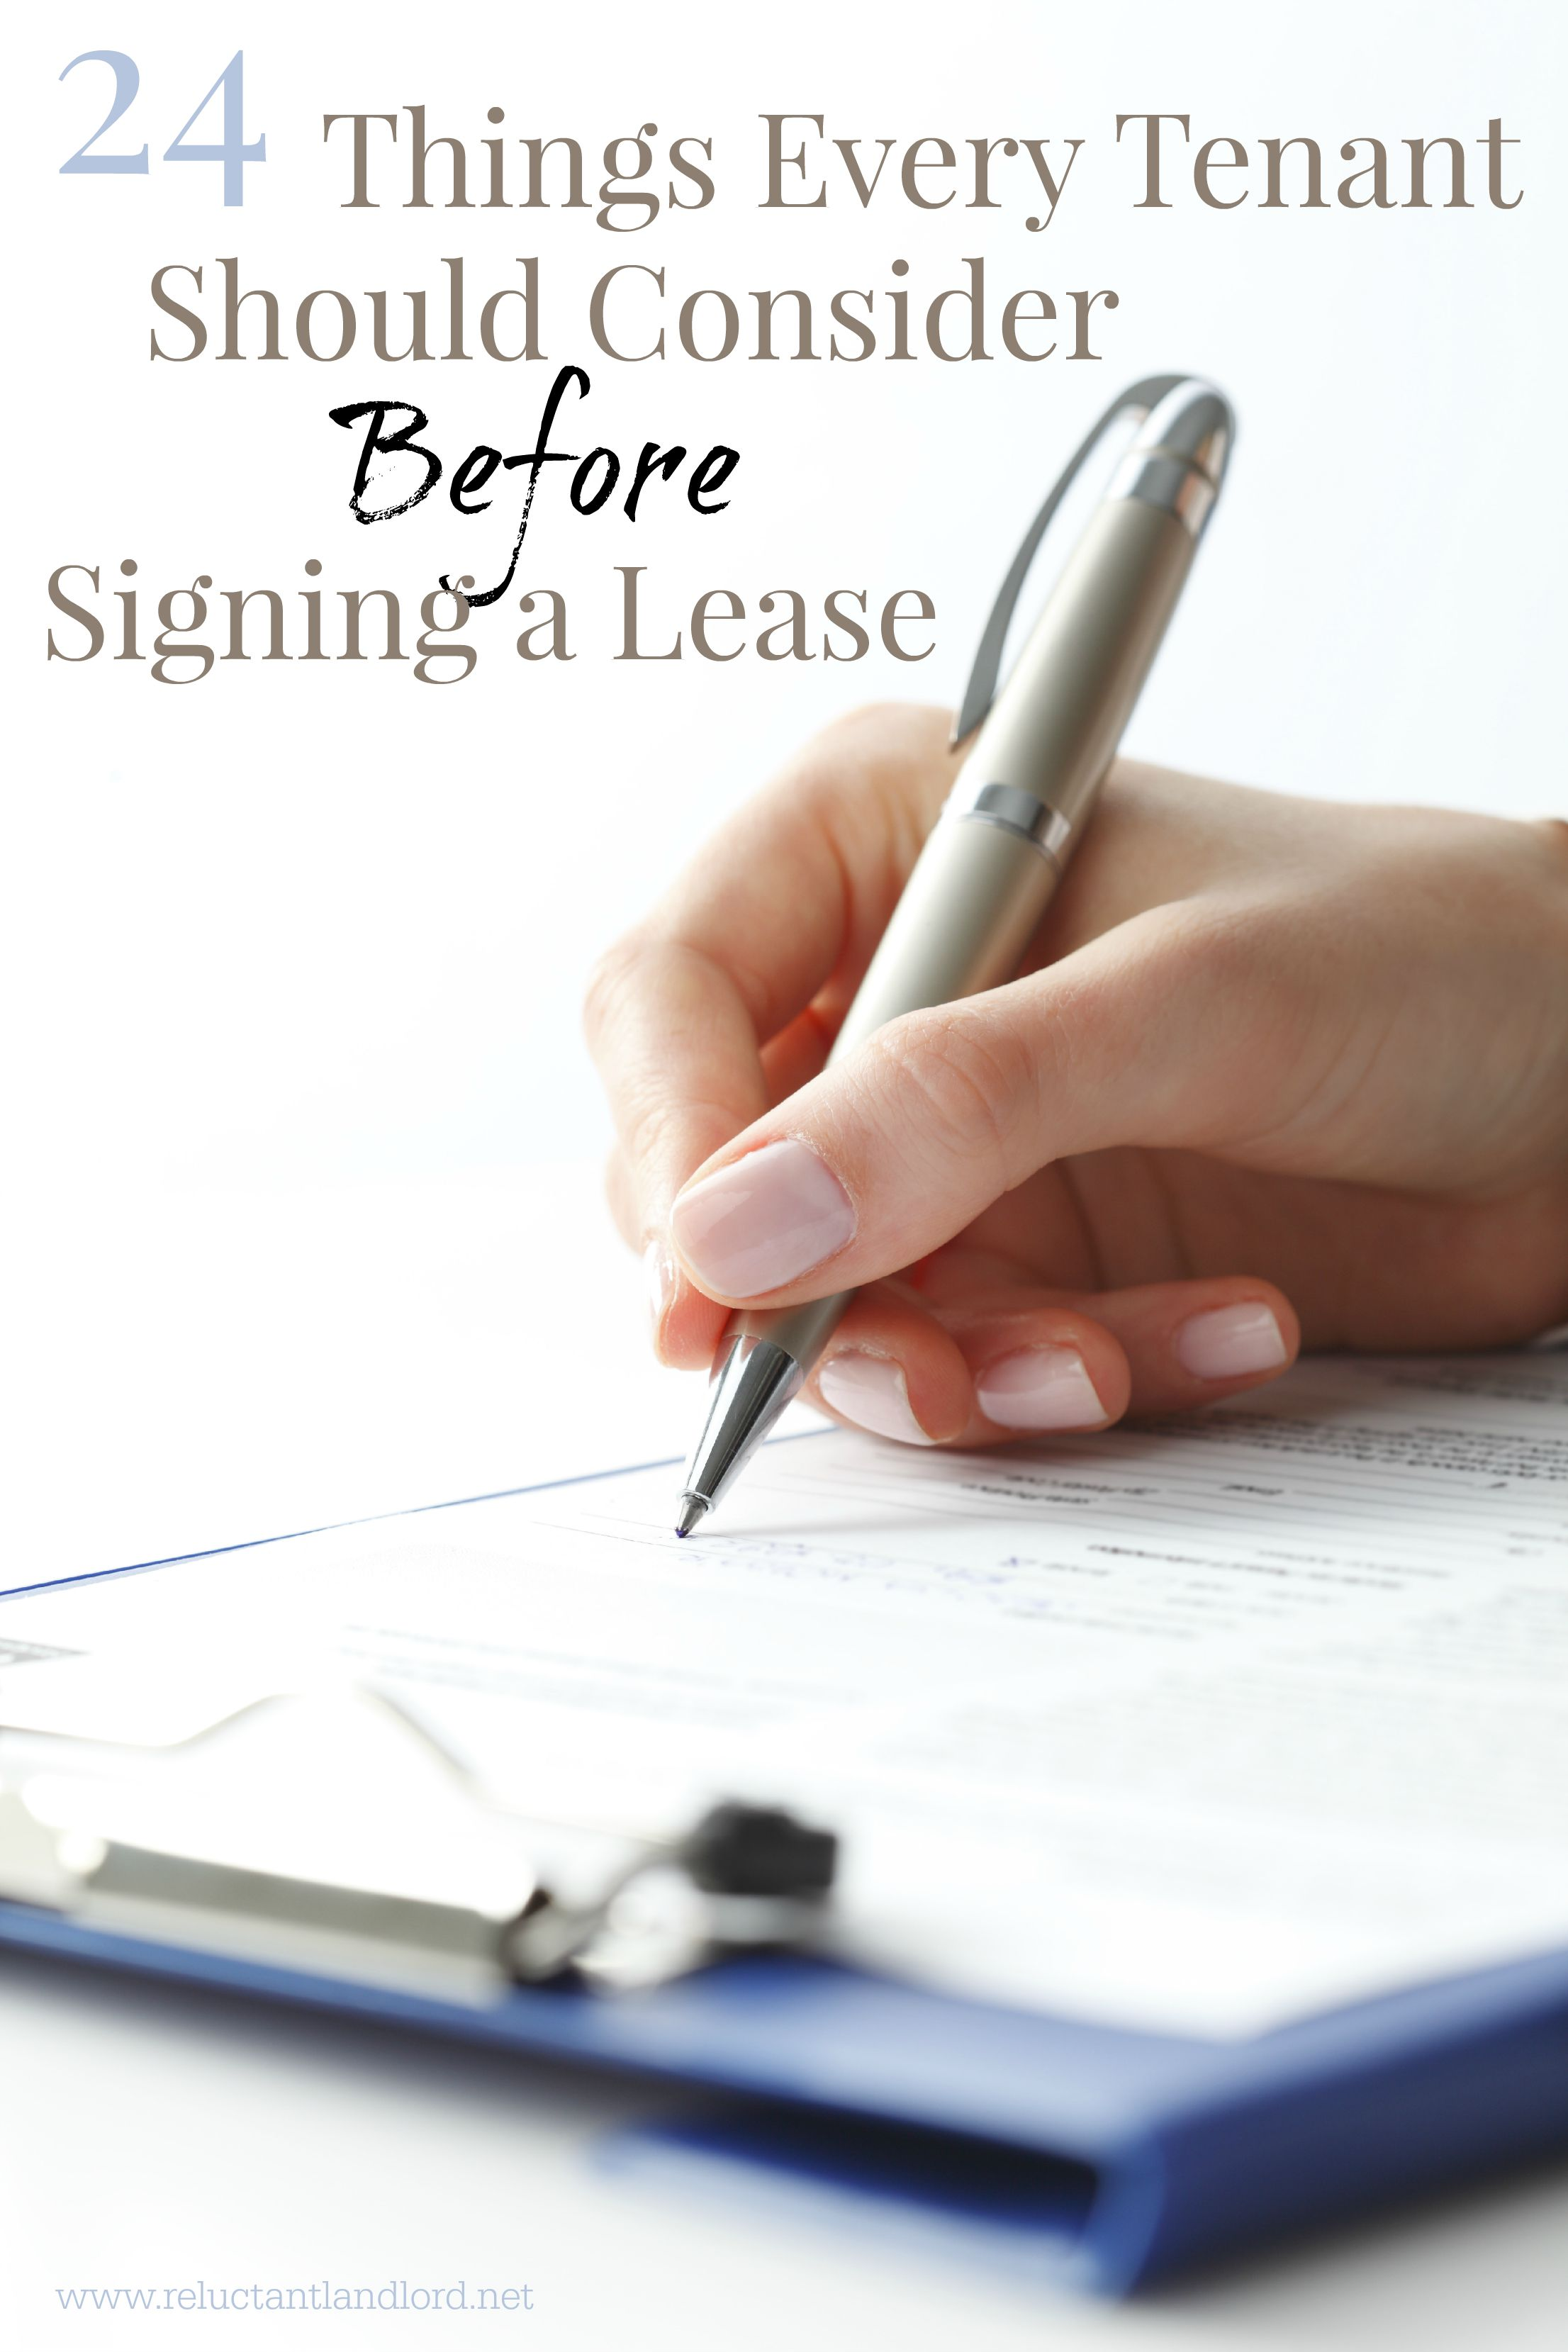 How Do You Word A Liability Release For A Tenant To Sign